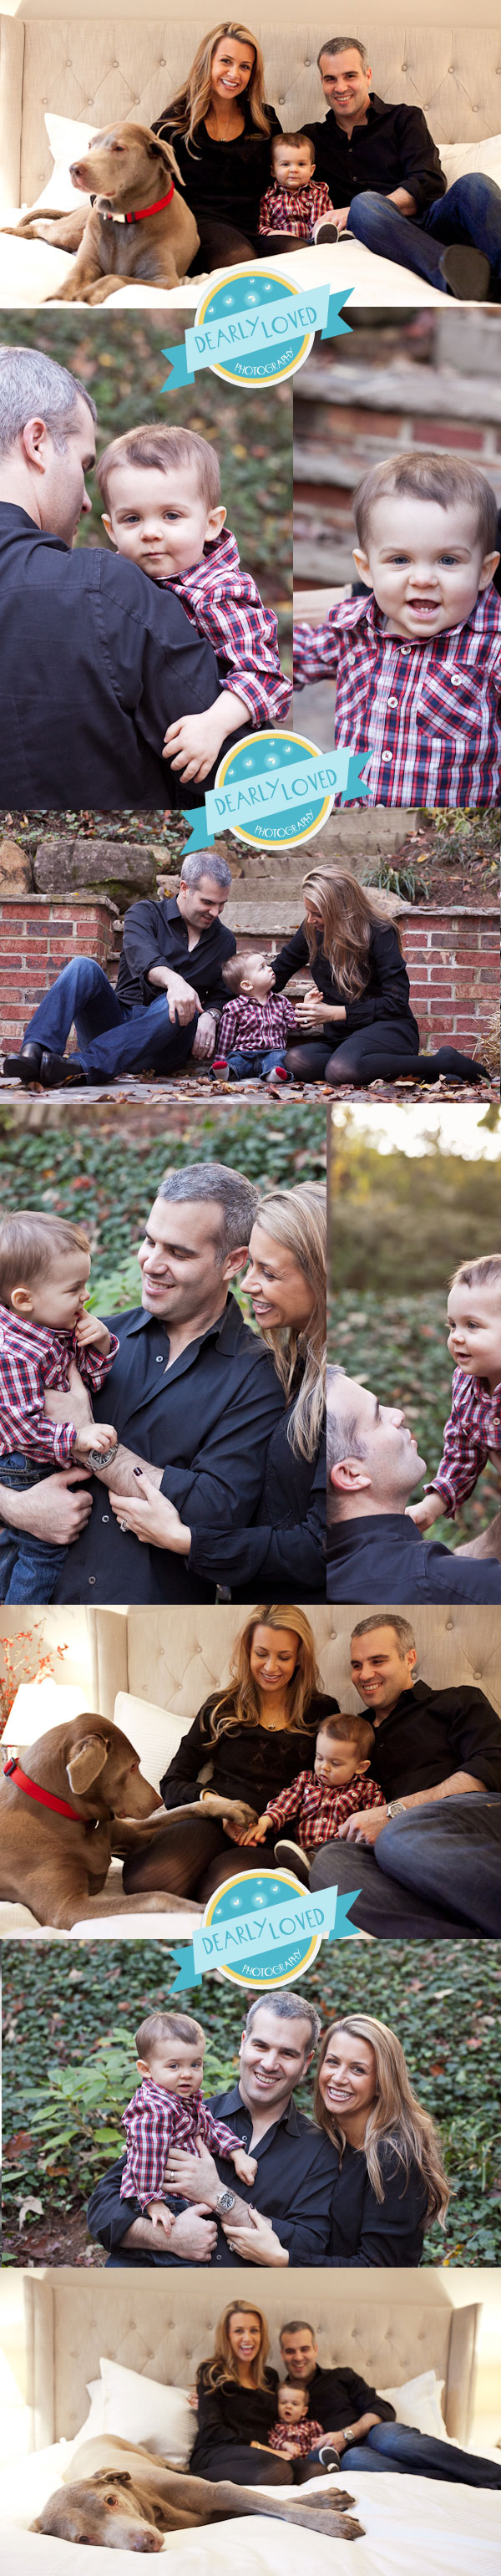 buckhead family photography